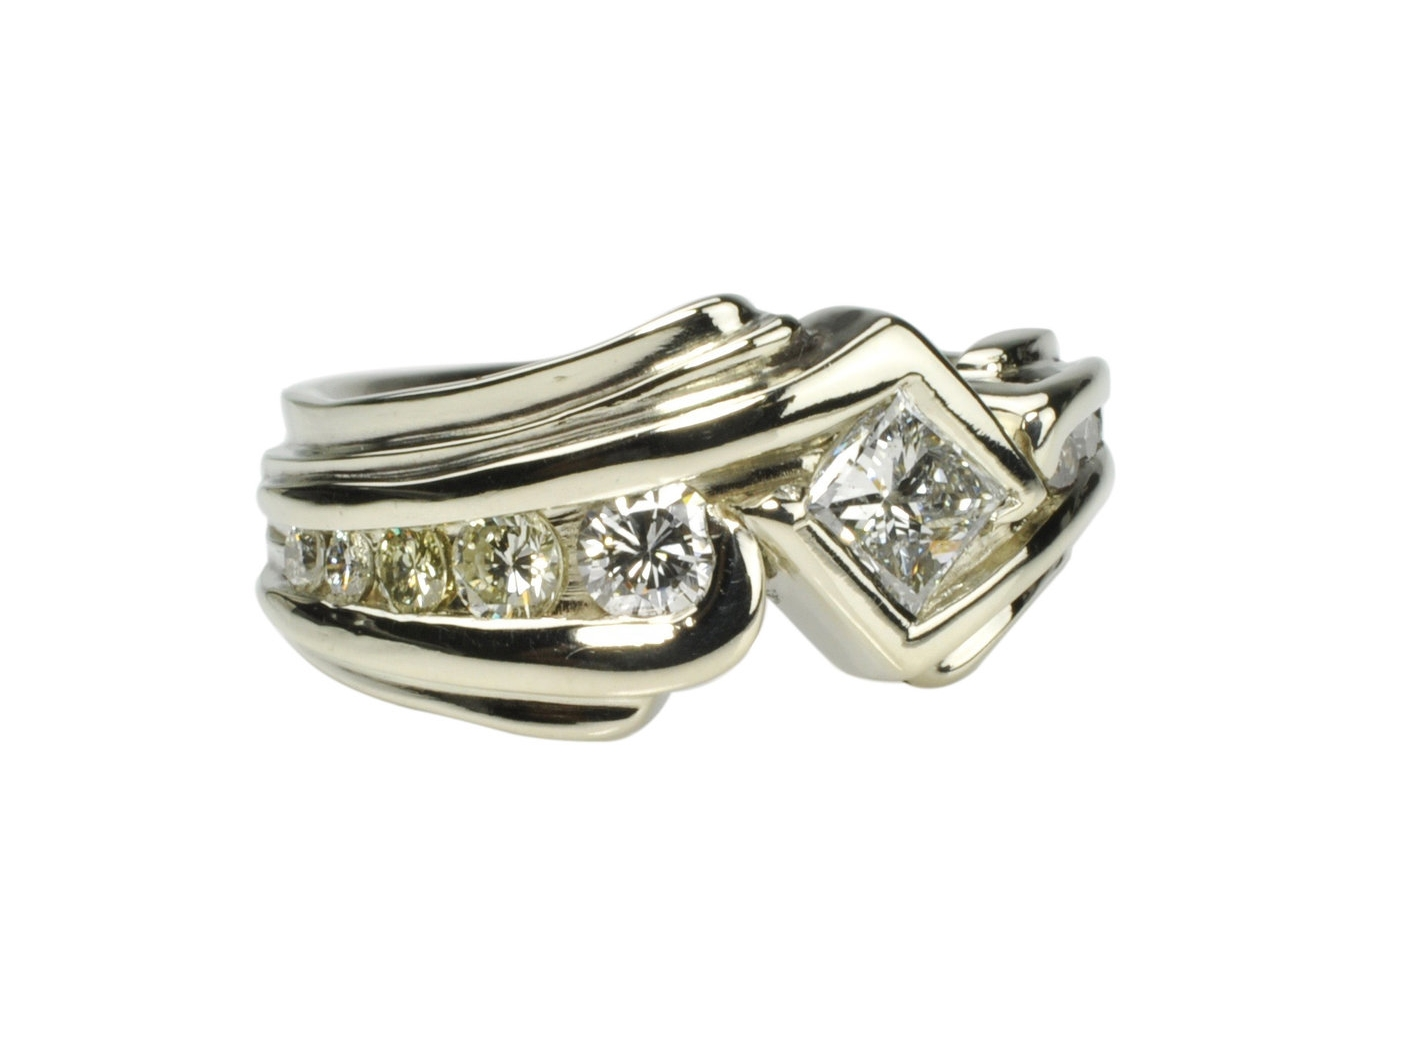 14k White Gold Ring with Diamonds from Heirloom Rings